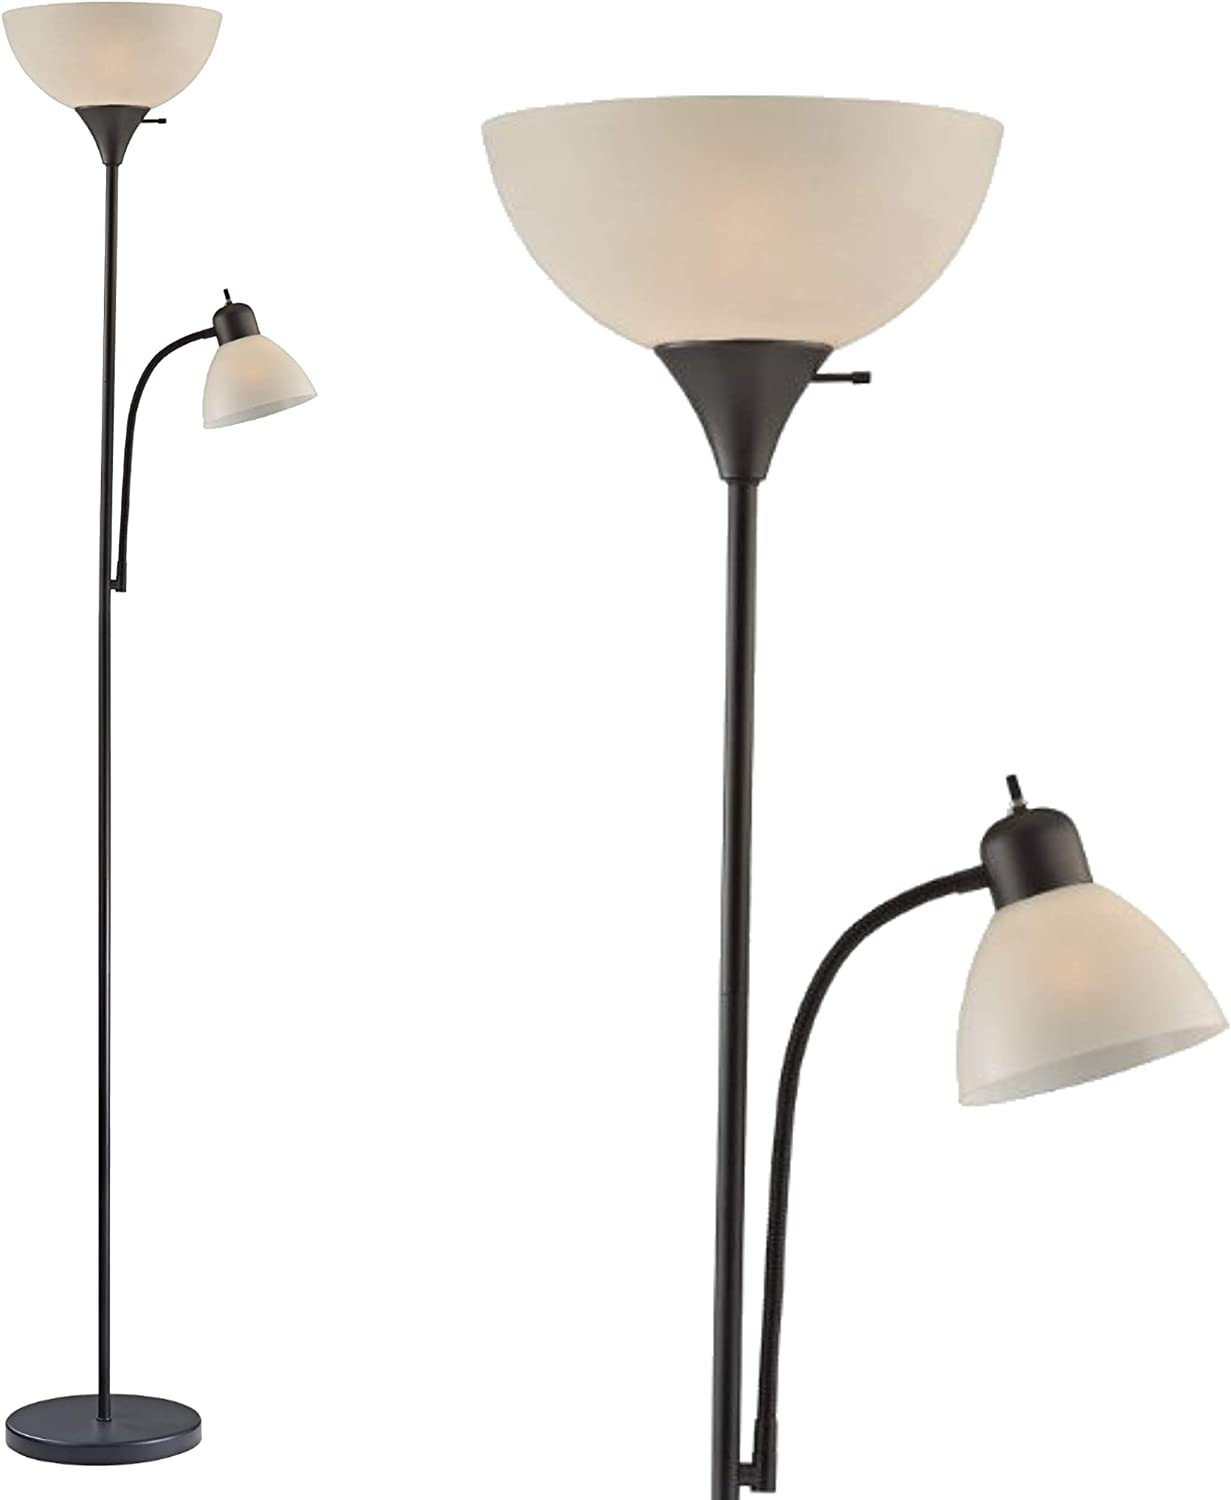 Adjustable Floor Lamp With Reading Light By Light Accents Susan